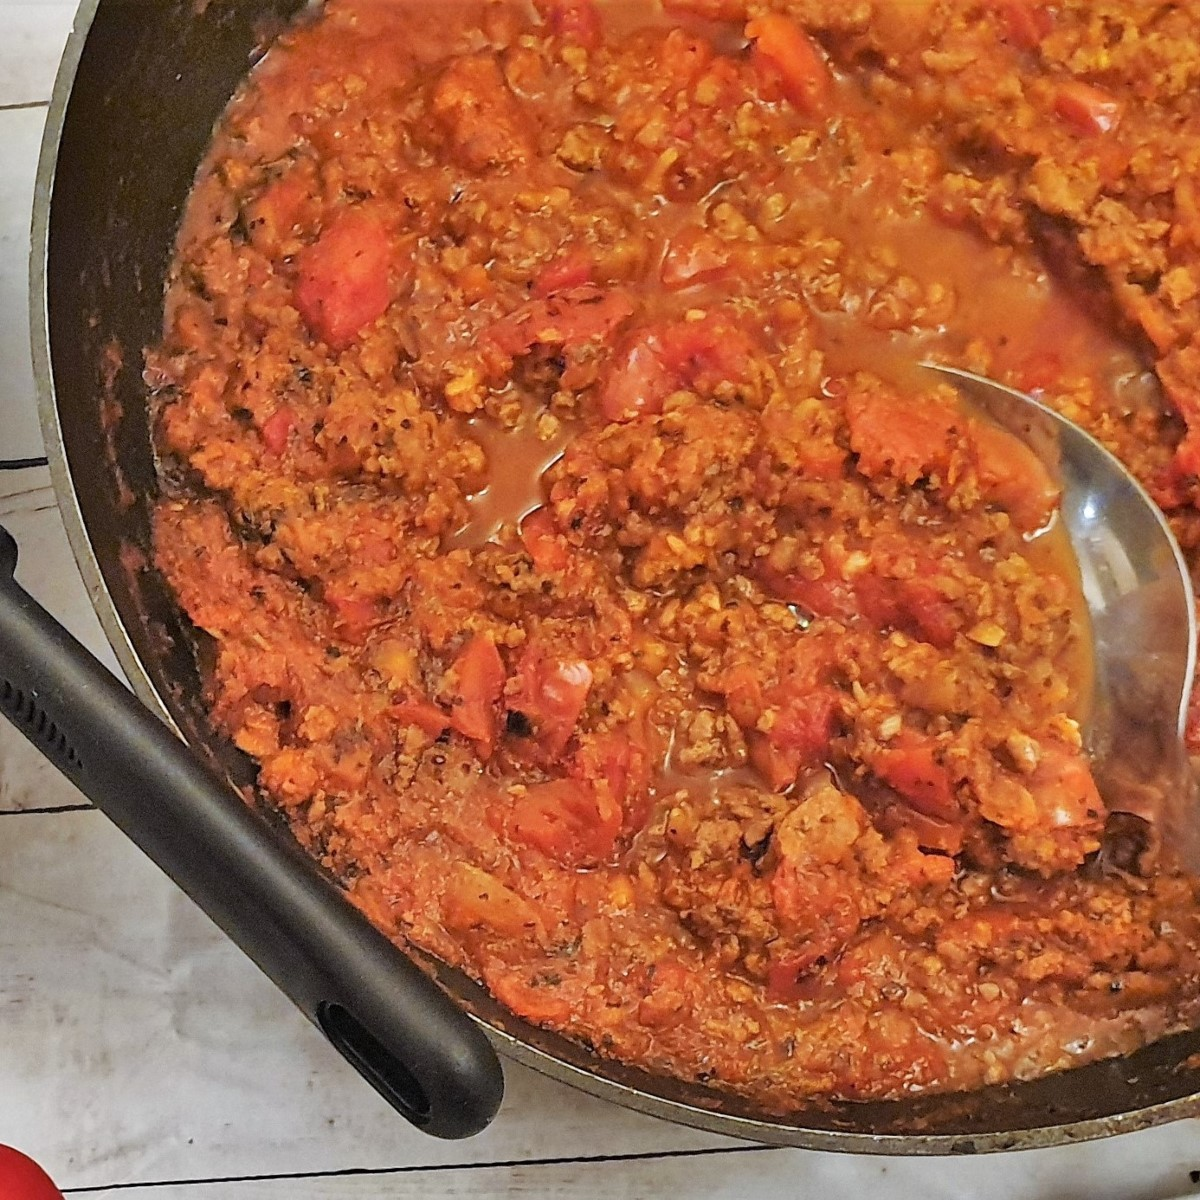 Close up of a pan of spaghetti bolognese sauce.